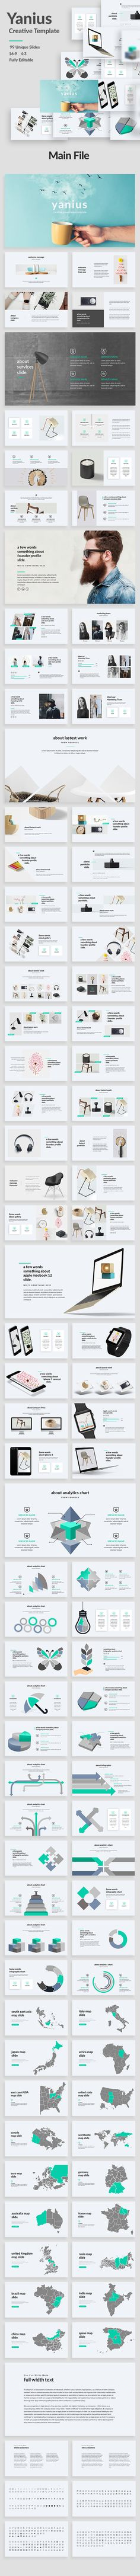 Yanius - Creative Powerpoint Template